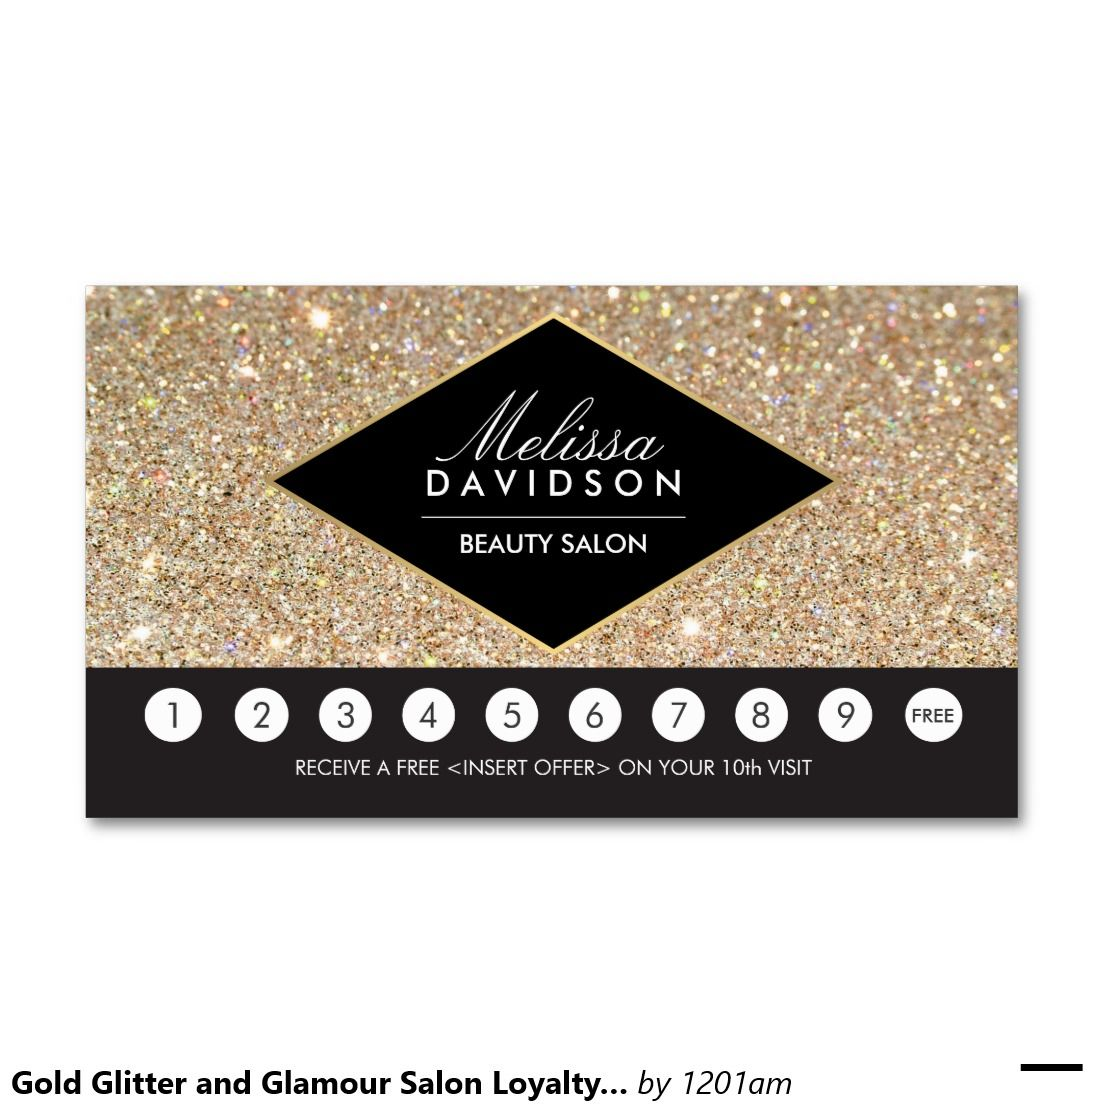 Gold Glitter and Glamour Salon Loyalty Card | Gold glitter, Business ...